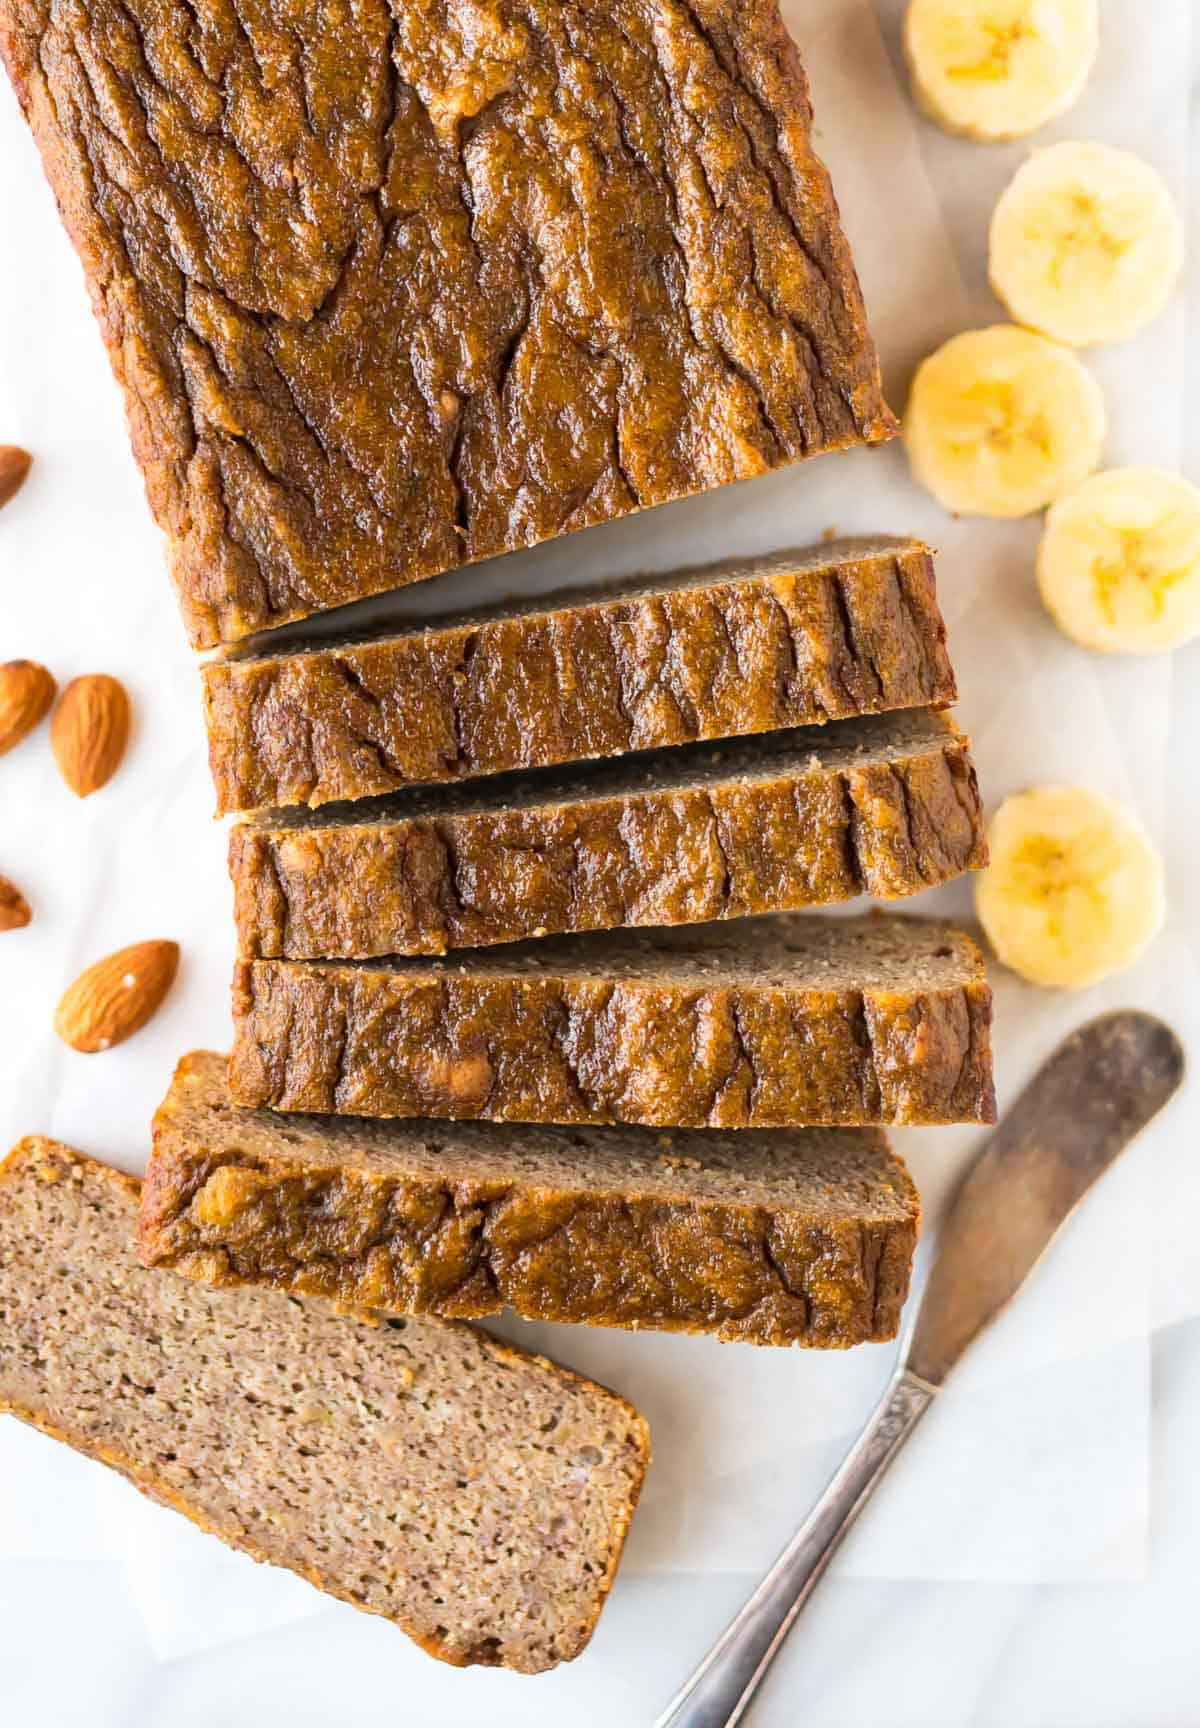 Easy Banana Bread Recipe With Almond Flour